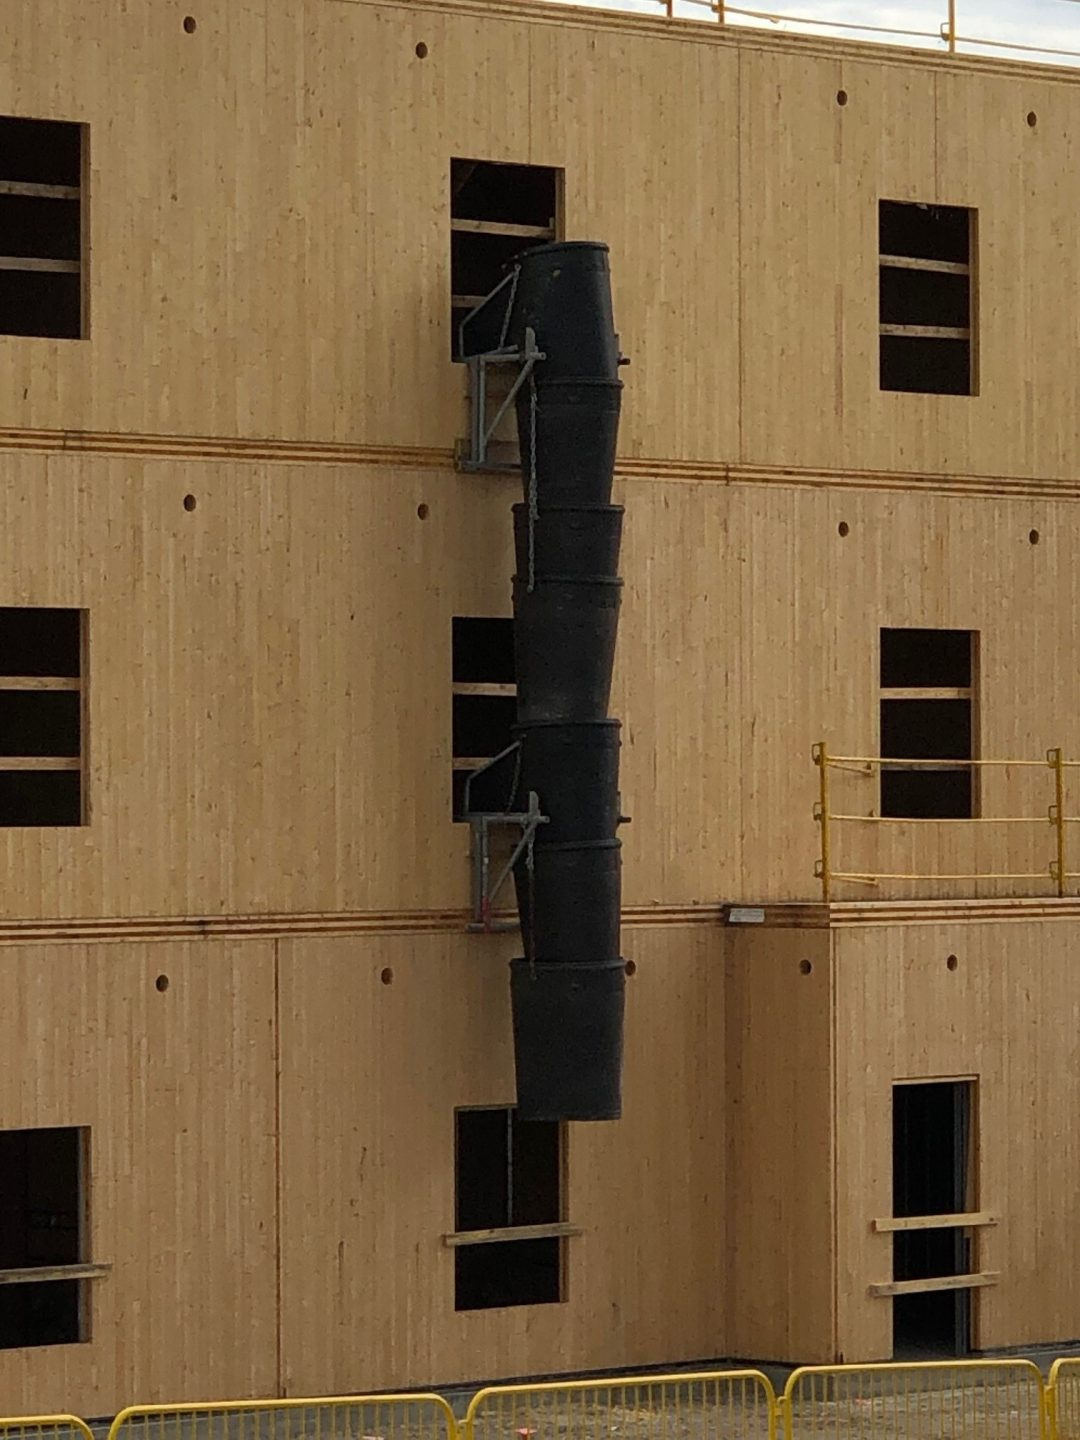 Poly Chute installation on wooden building